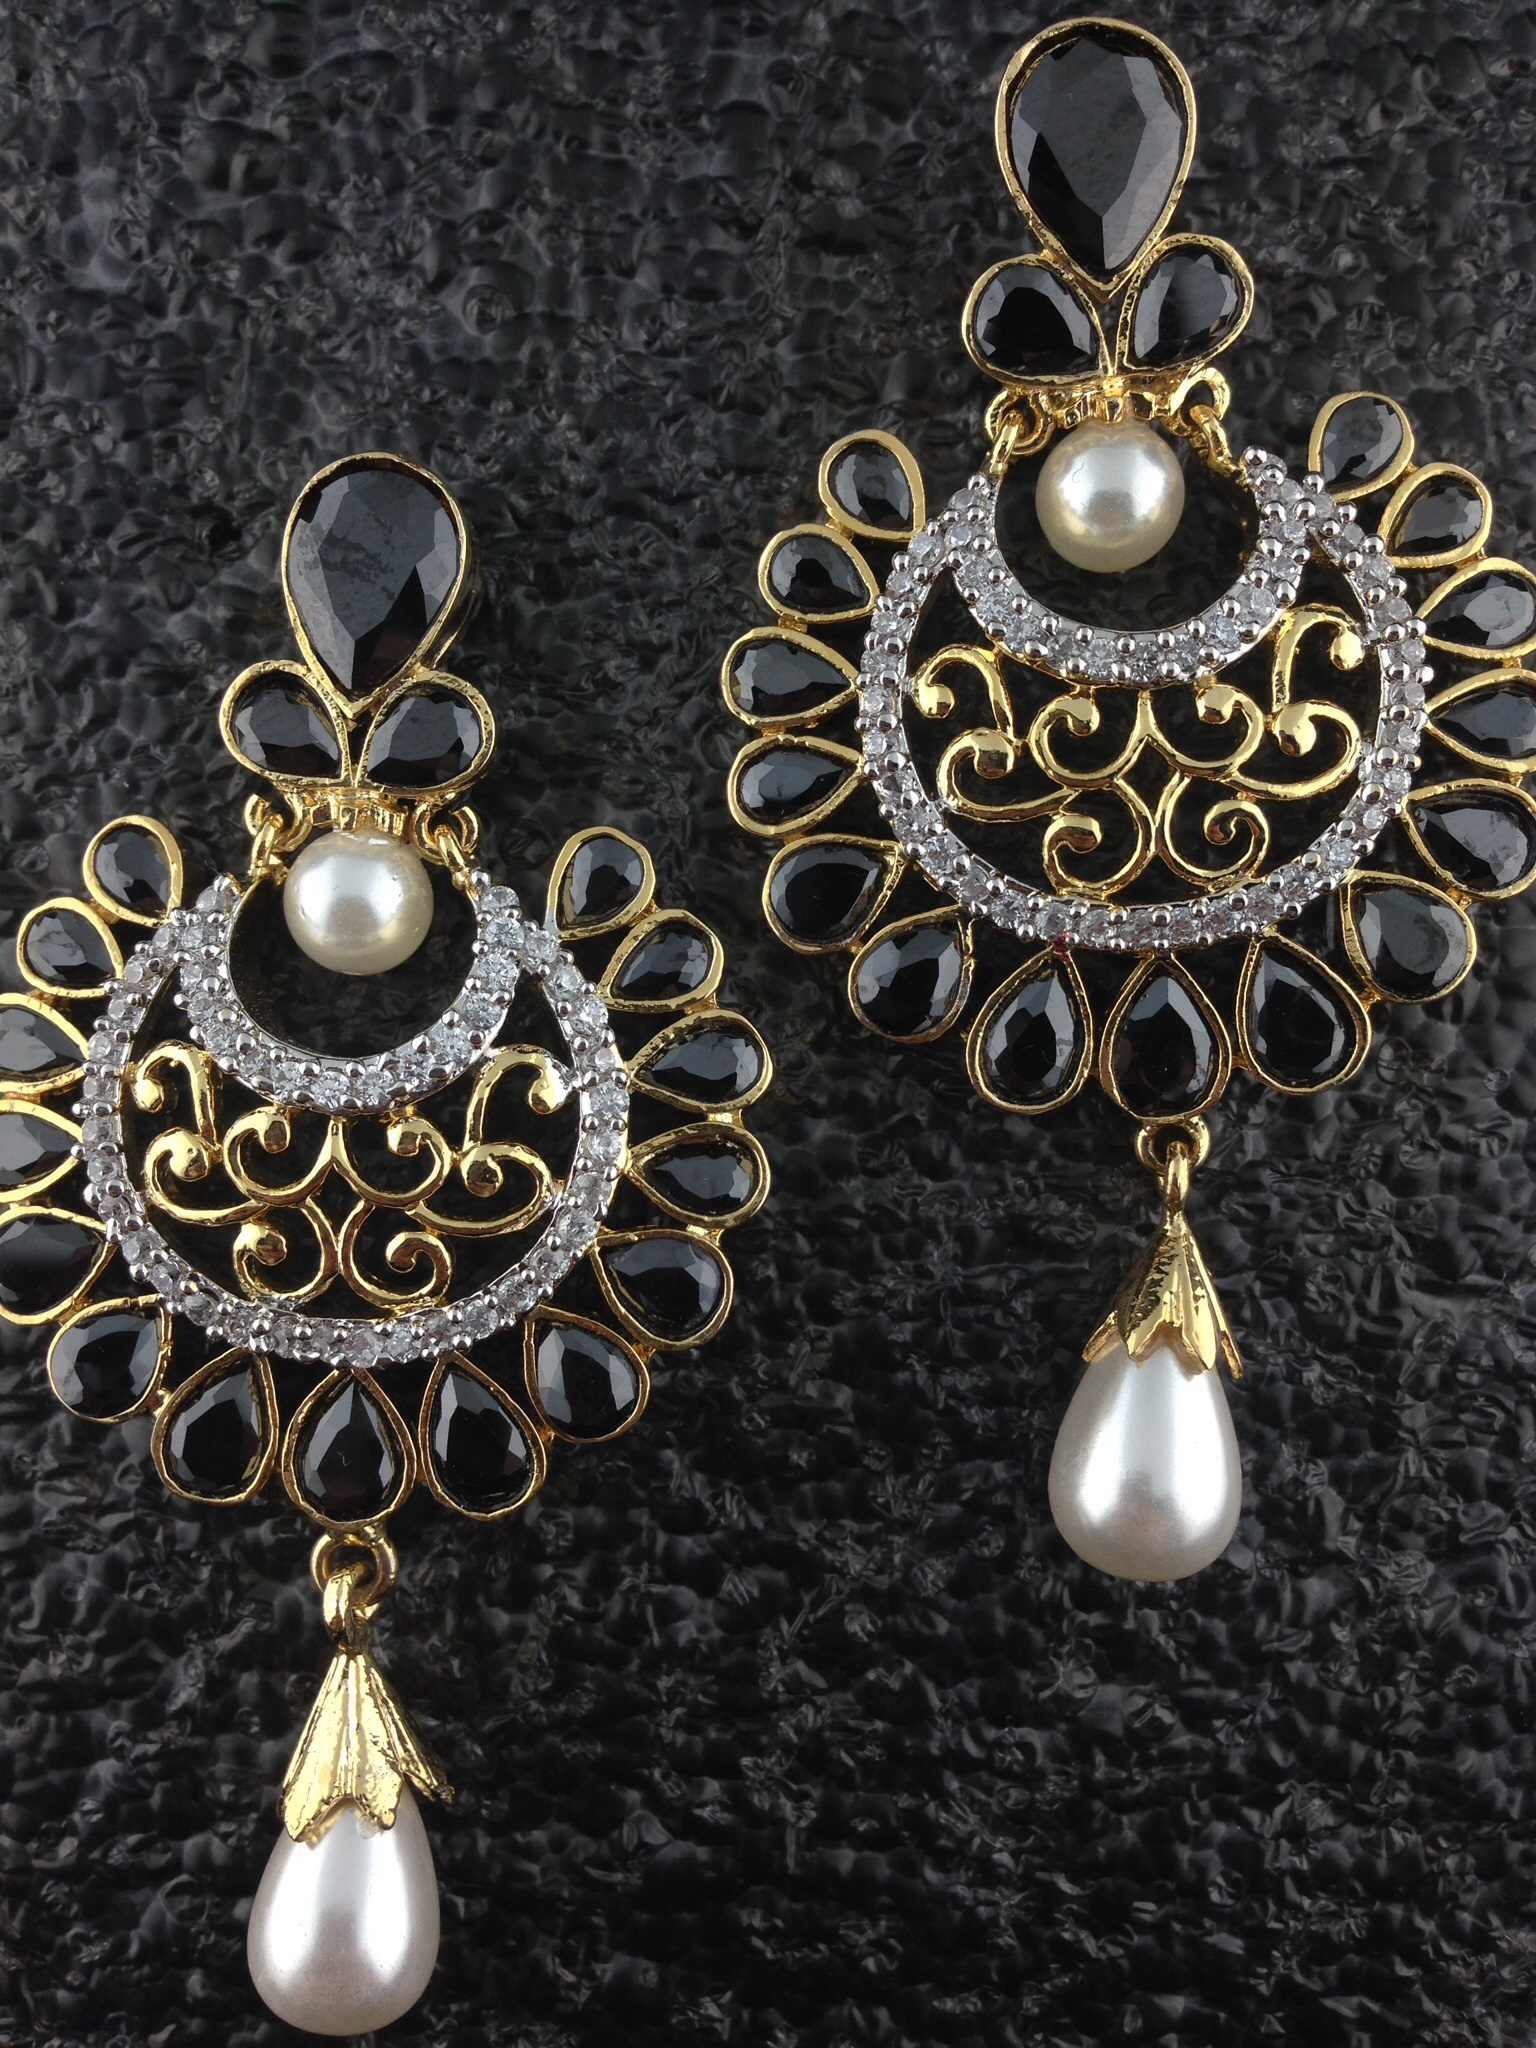 CZ Designer Circular Earrings With Black Onyx and Pearls.